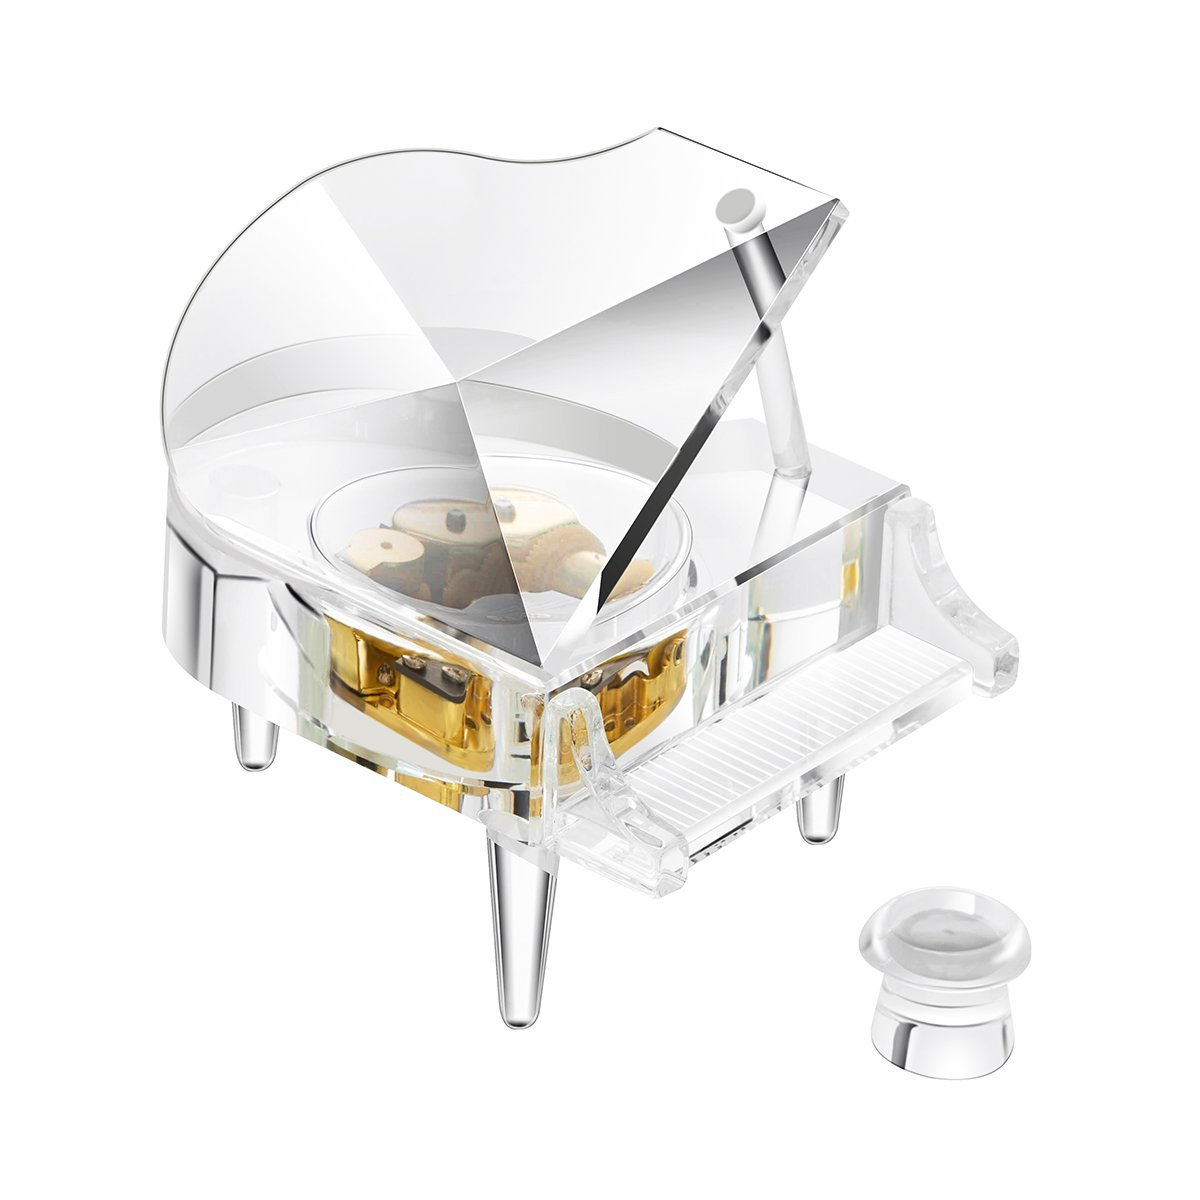 YWHL Crystal piano music box love story Gold Plated Windup Clockwork Mechanism home decor for woman